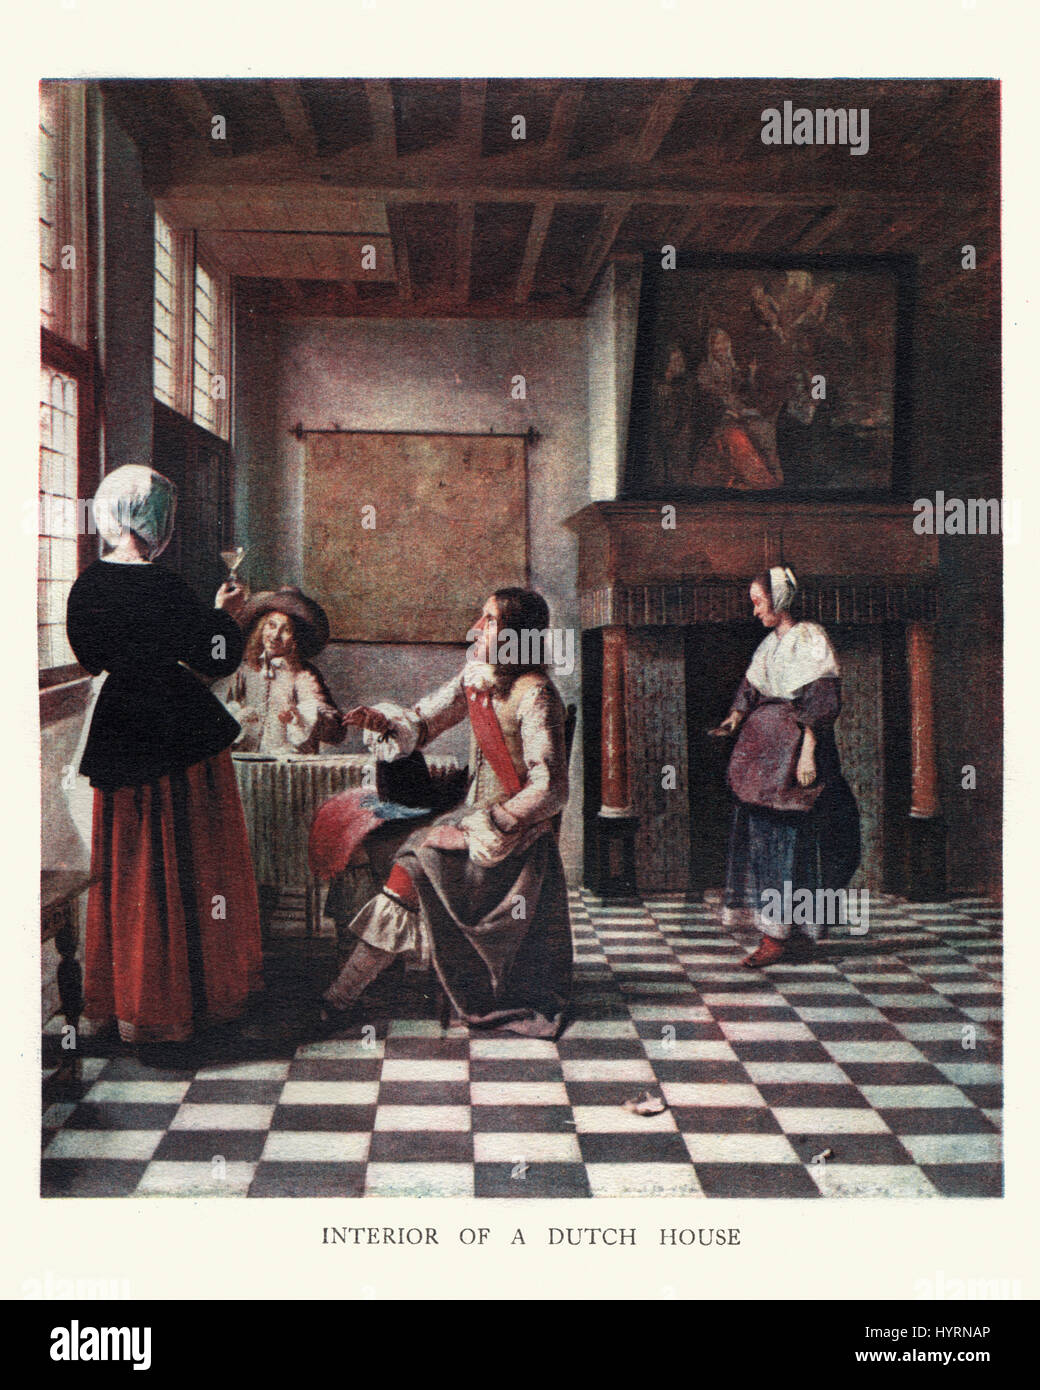 Interior of a Dutch House, from the painting by Pieter De Hooch, a